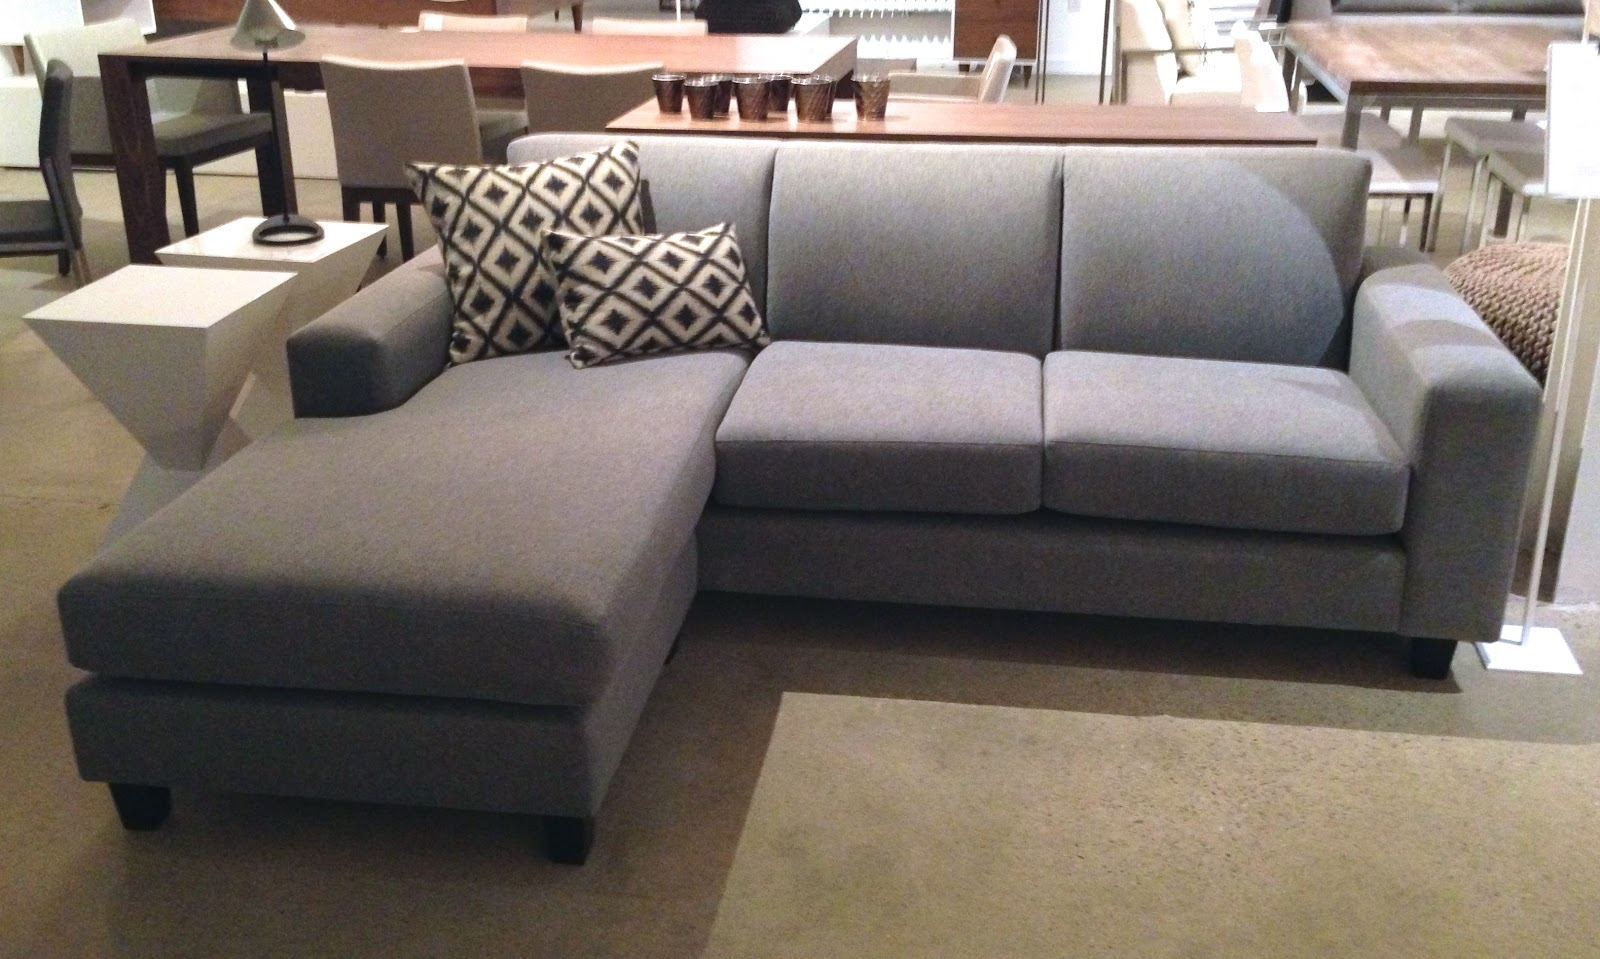 Most Popular Sectional Sofas For Condos Intended For Sectionals Canada (View 8 of 15)